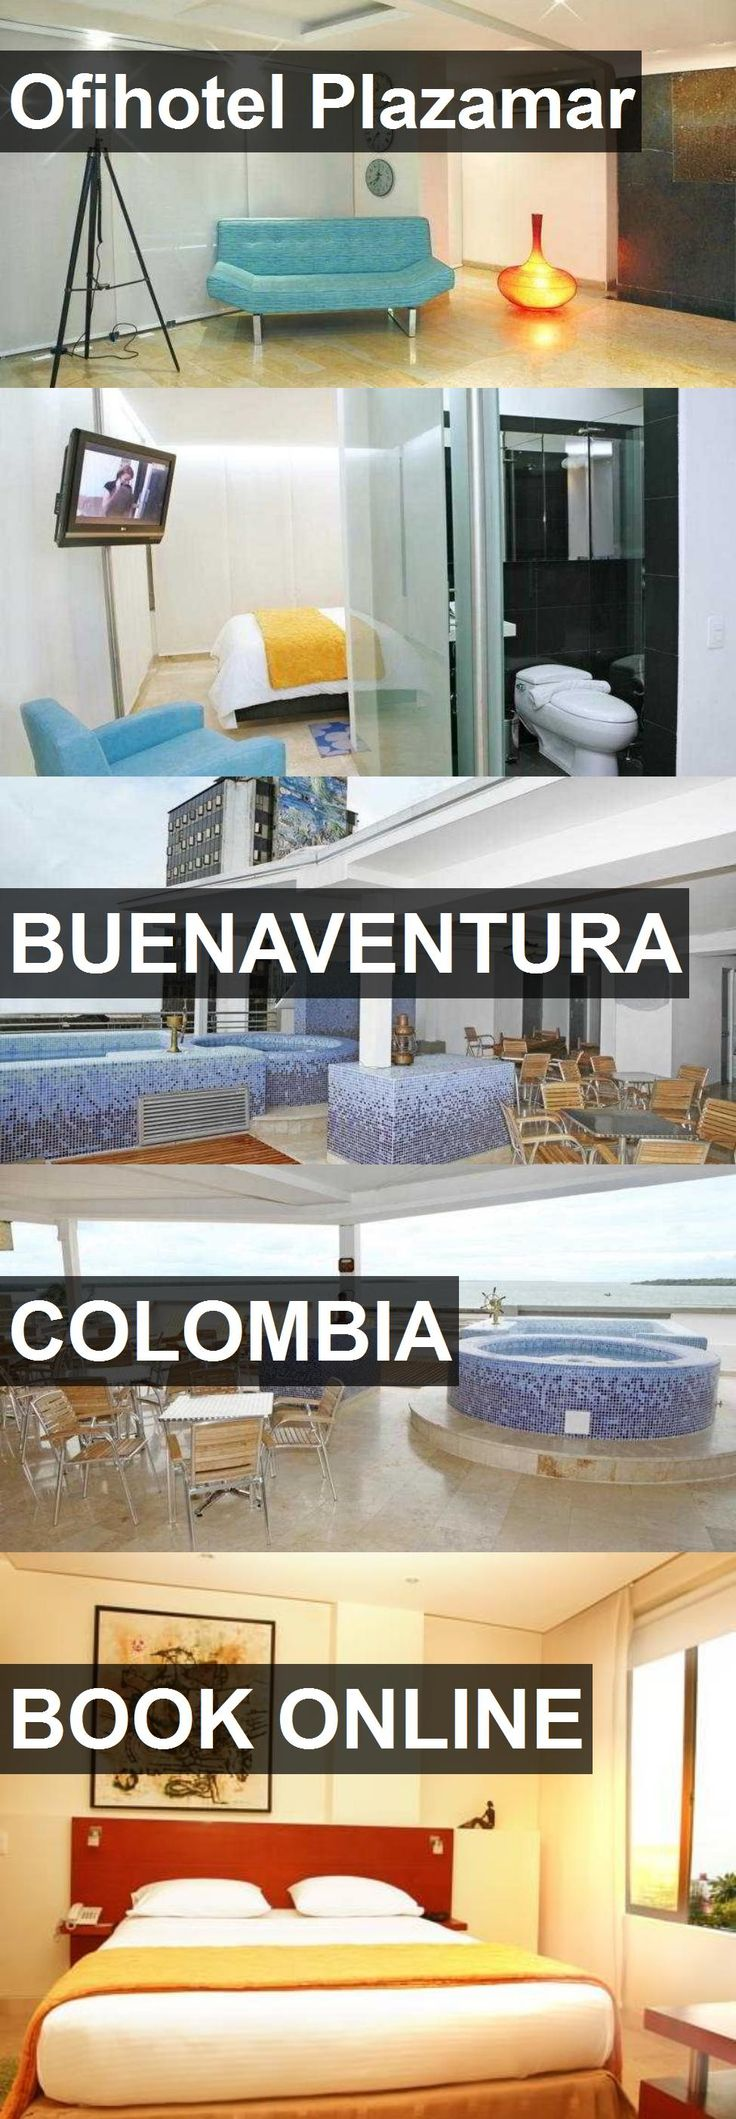 Ofihotel Plazamar in Buenaventura, Colombia. For more information, photos, reviews and best prices please follow the link. #Colombia #Buenaventura #travel #vacation #hotel